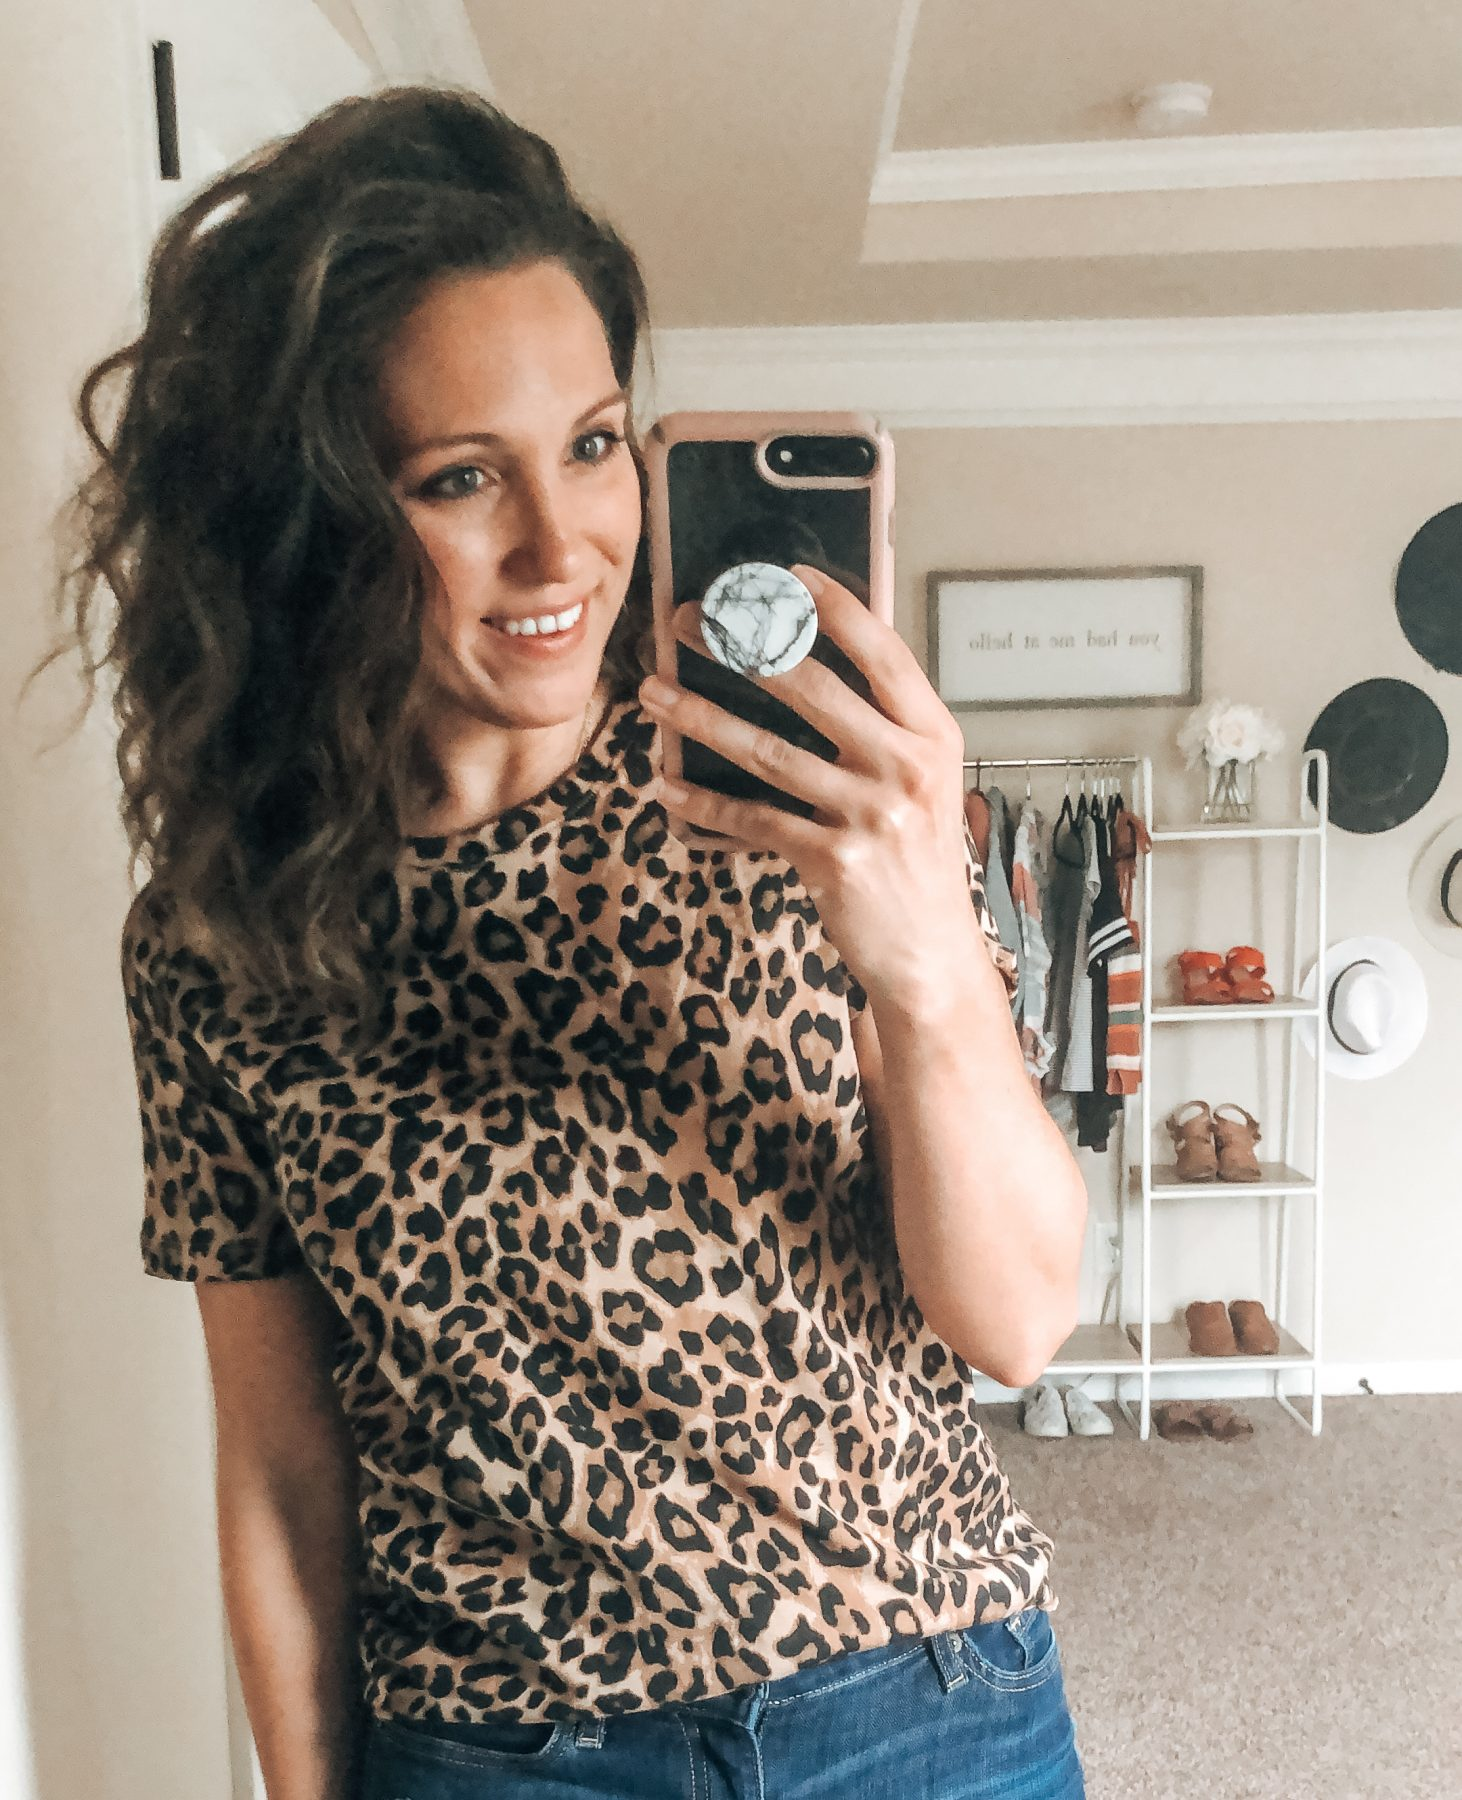 H&M Fall Style Session Leopard Tee